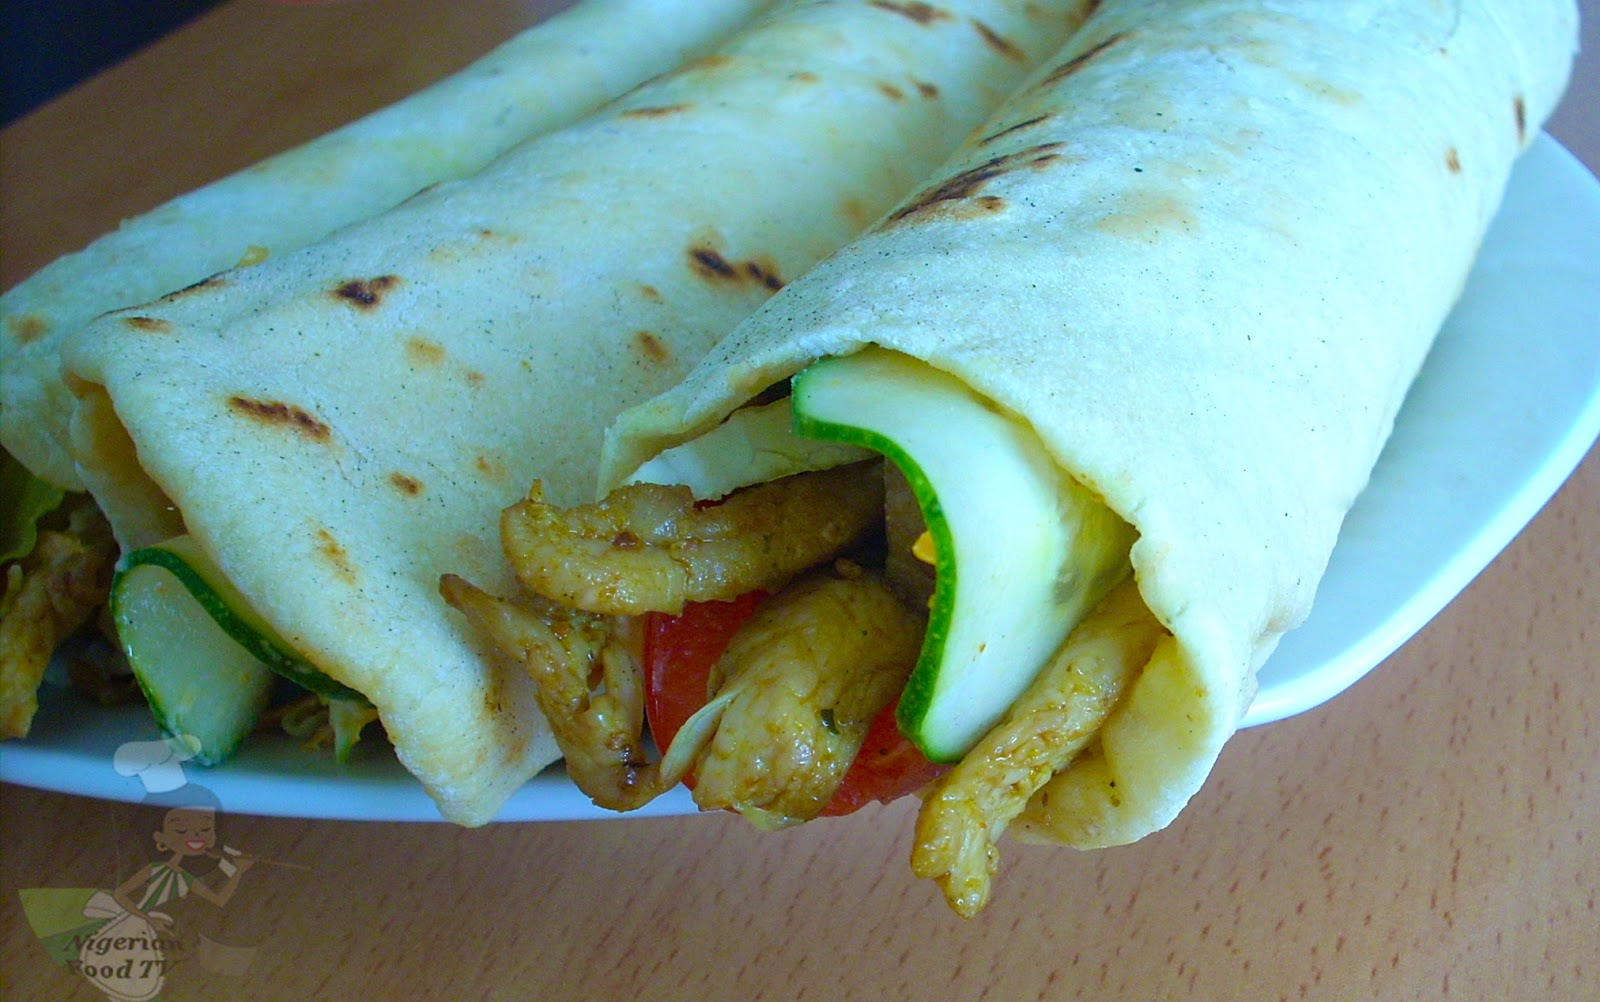 nigerian shawarma,Nigerian Food Recipes, Nigerian Recipes, Nigerian Food, Nigerian Food TV